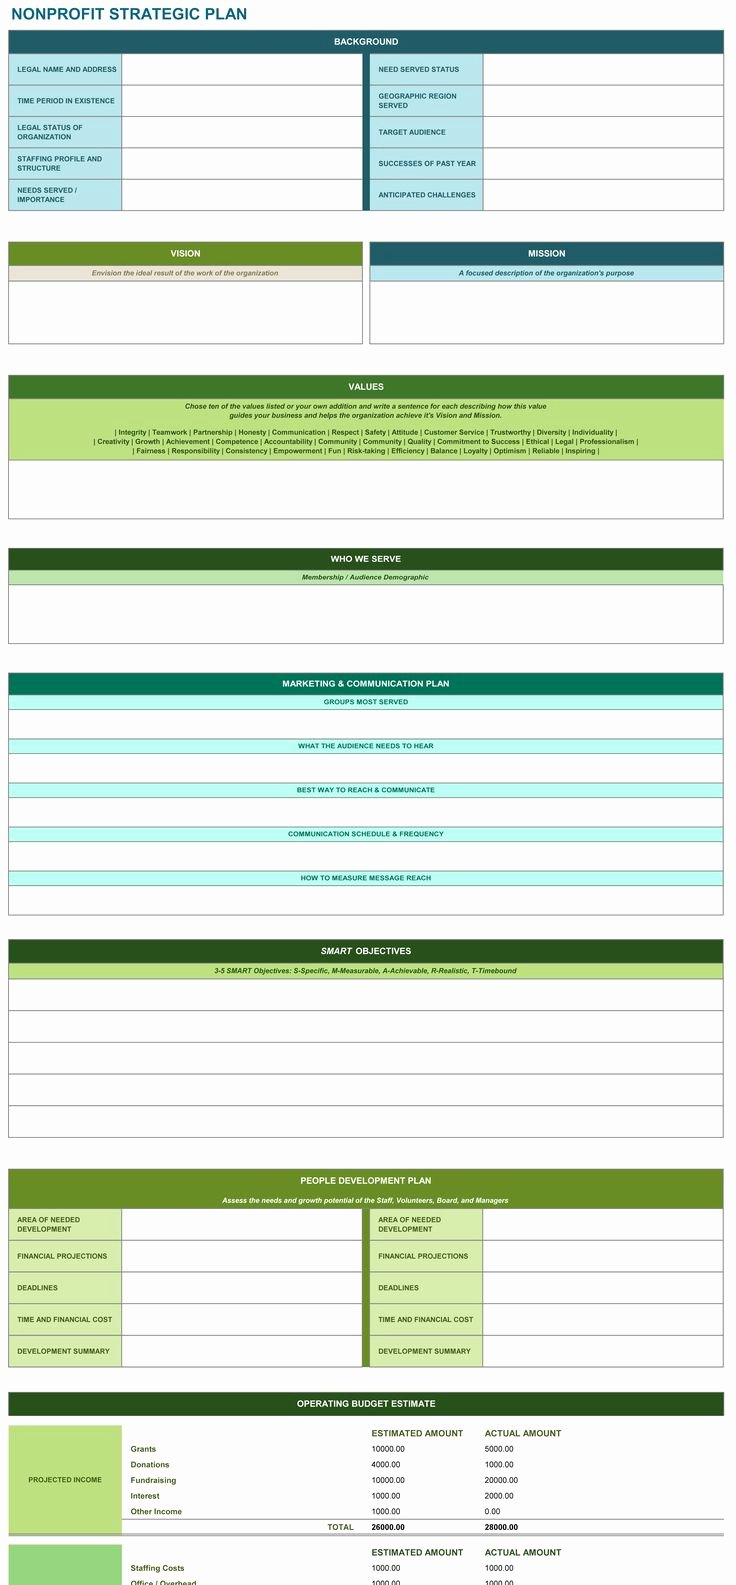 Strategic Planning Template Excel Lovely Non Profit Strategic Plan Excel Template